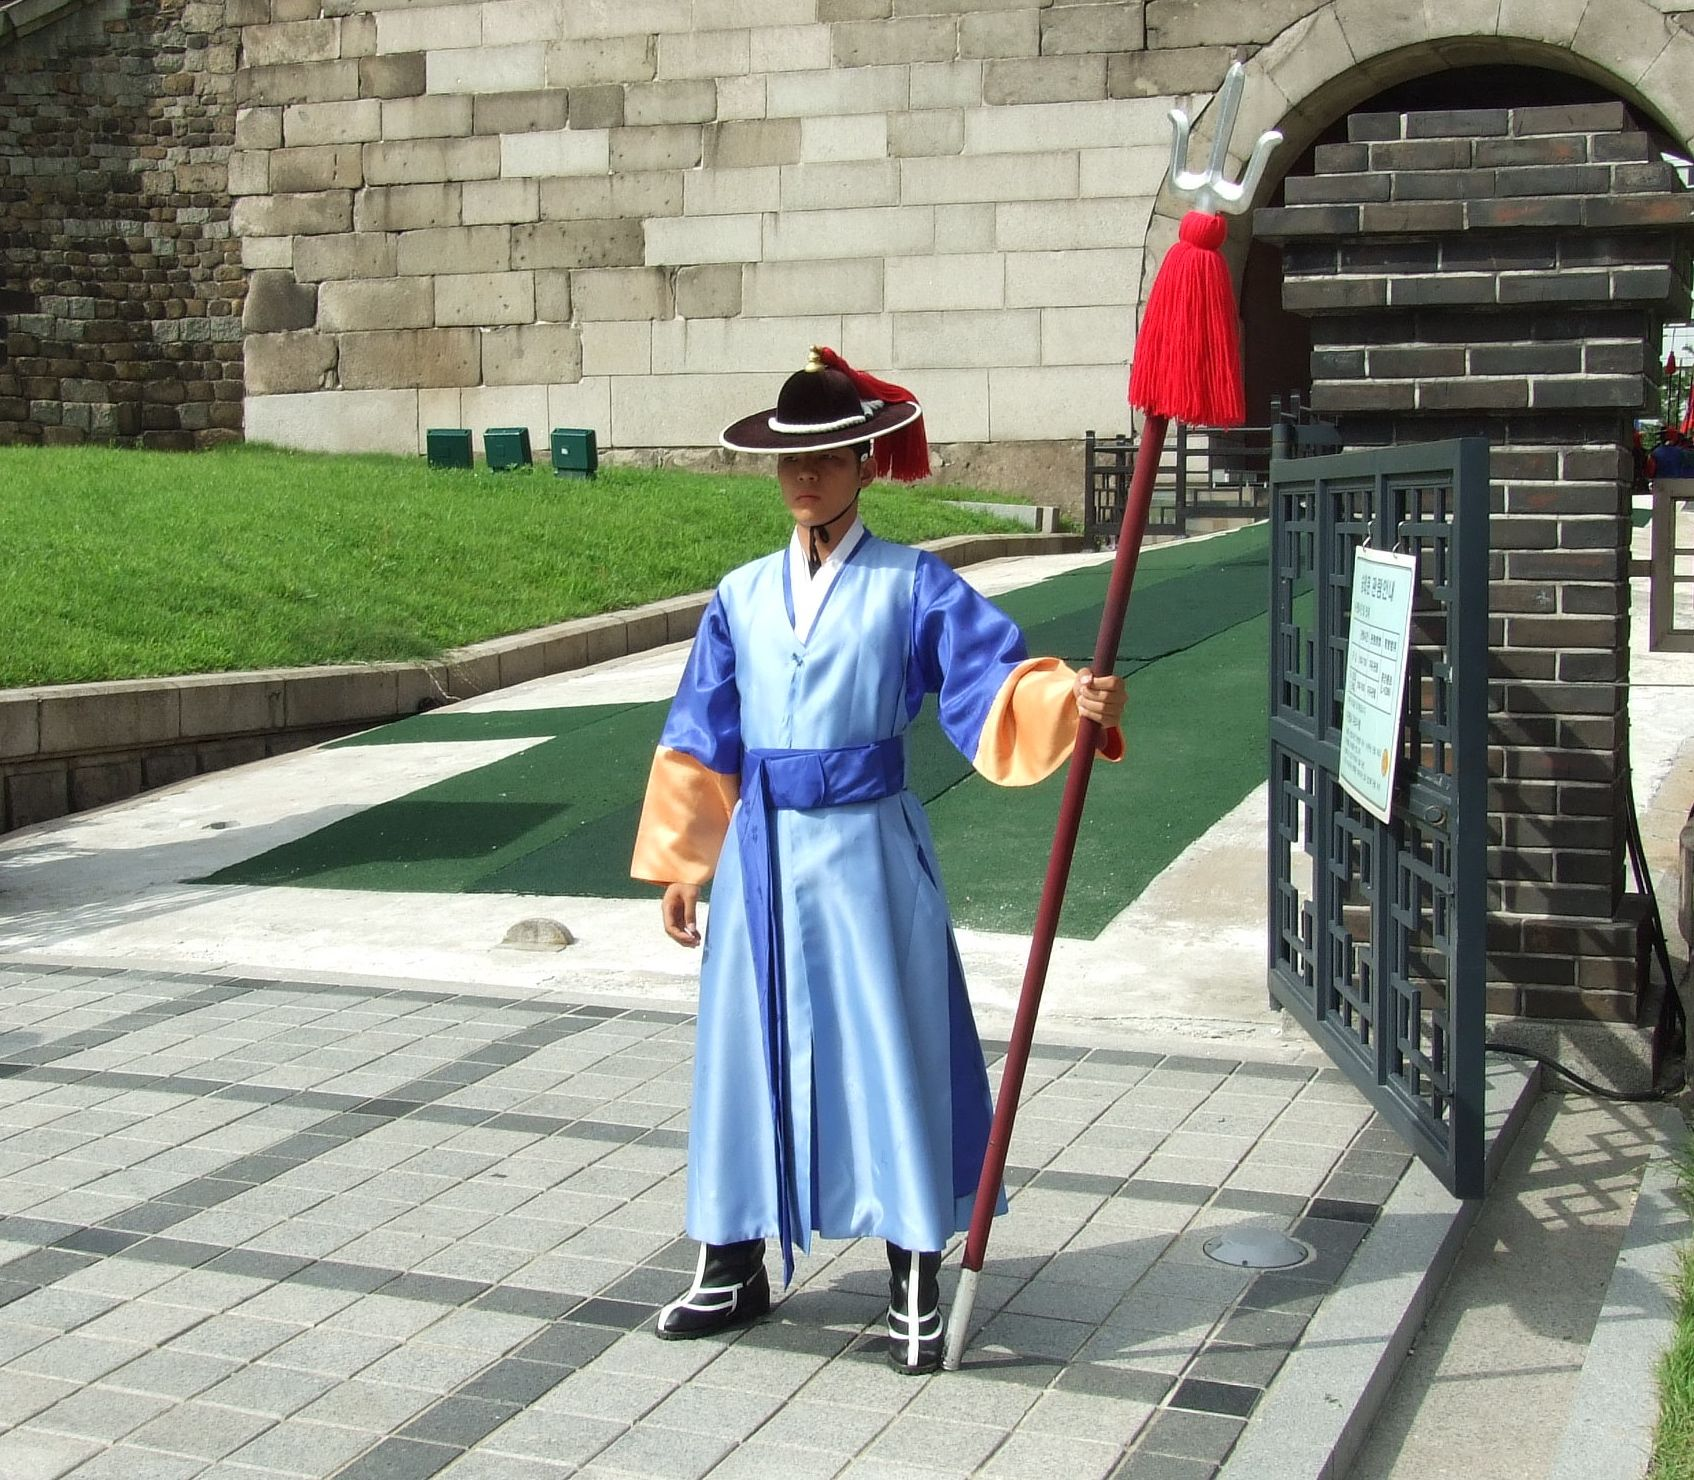 """The jeonbok is a type of sleeveless long vest in hanbok, traditional Korean clothing, which was worn by military personnel. It does not have overlapped column on the front side, and was worn over dongdari (동다리).[1] """"Korean guard with dangpa"""" by Kbarends - Own work. Licensed under CC BY-SA 3.0 via Wikimedia Commons - http://commons.wikimedia.org/wiki/File:Korean_guard_with_dangpa.JPG#/media/File:Korean_guard_with_dangpa.JPG"""